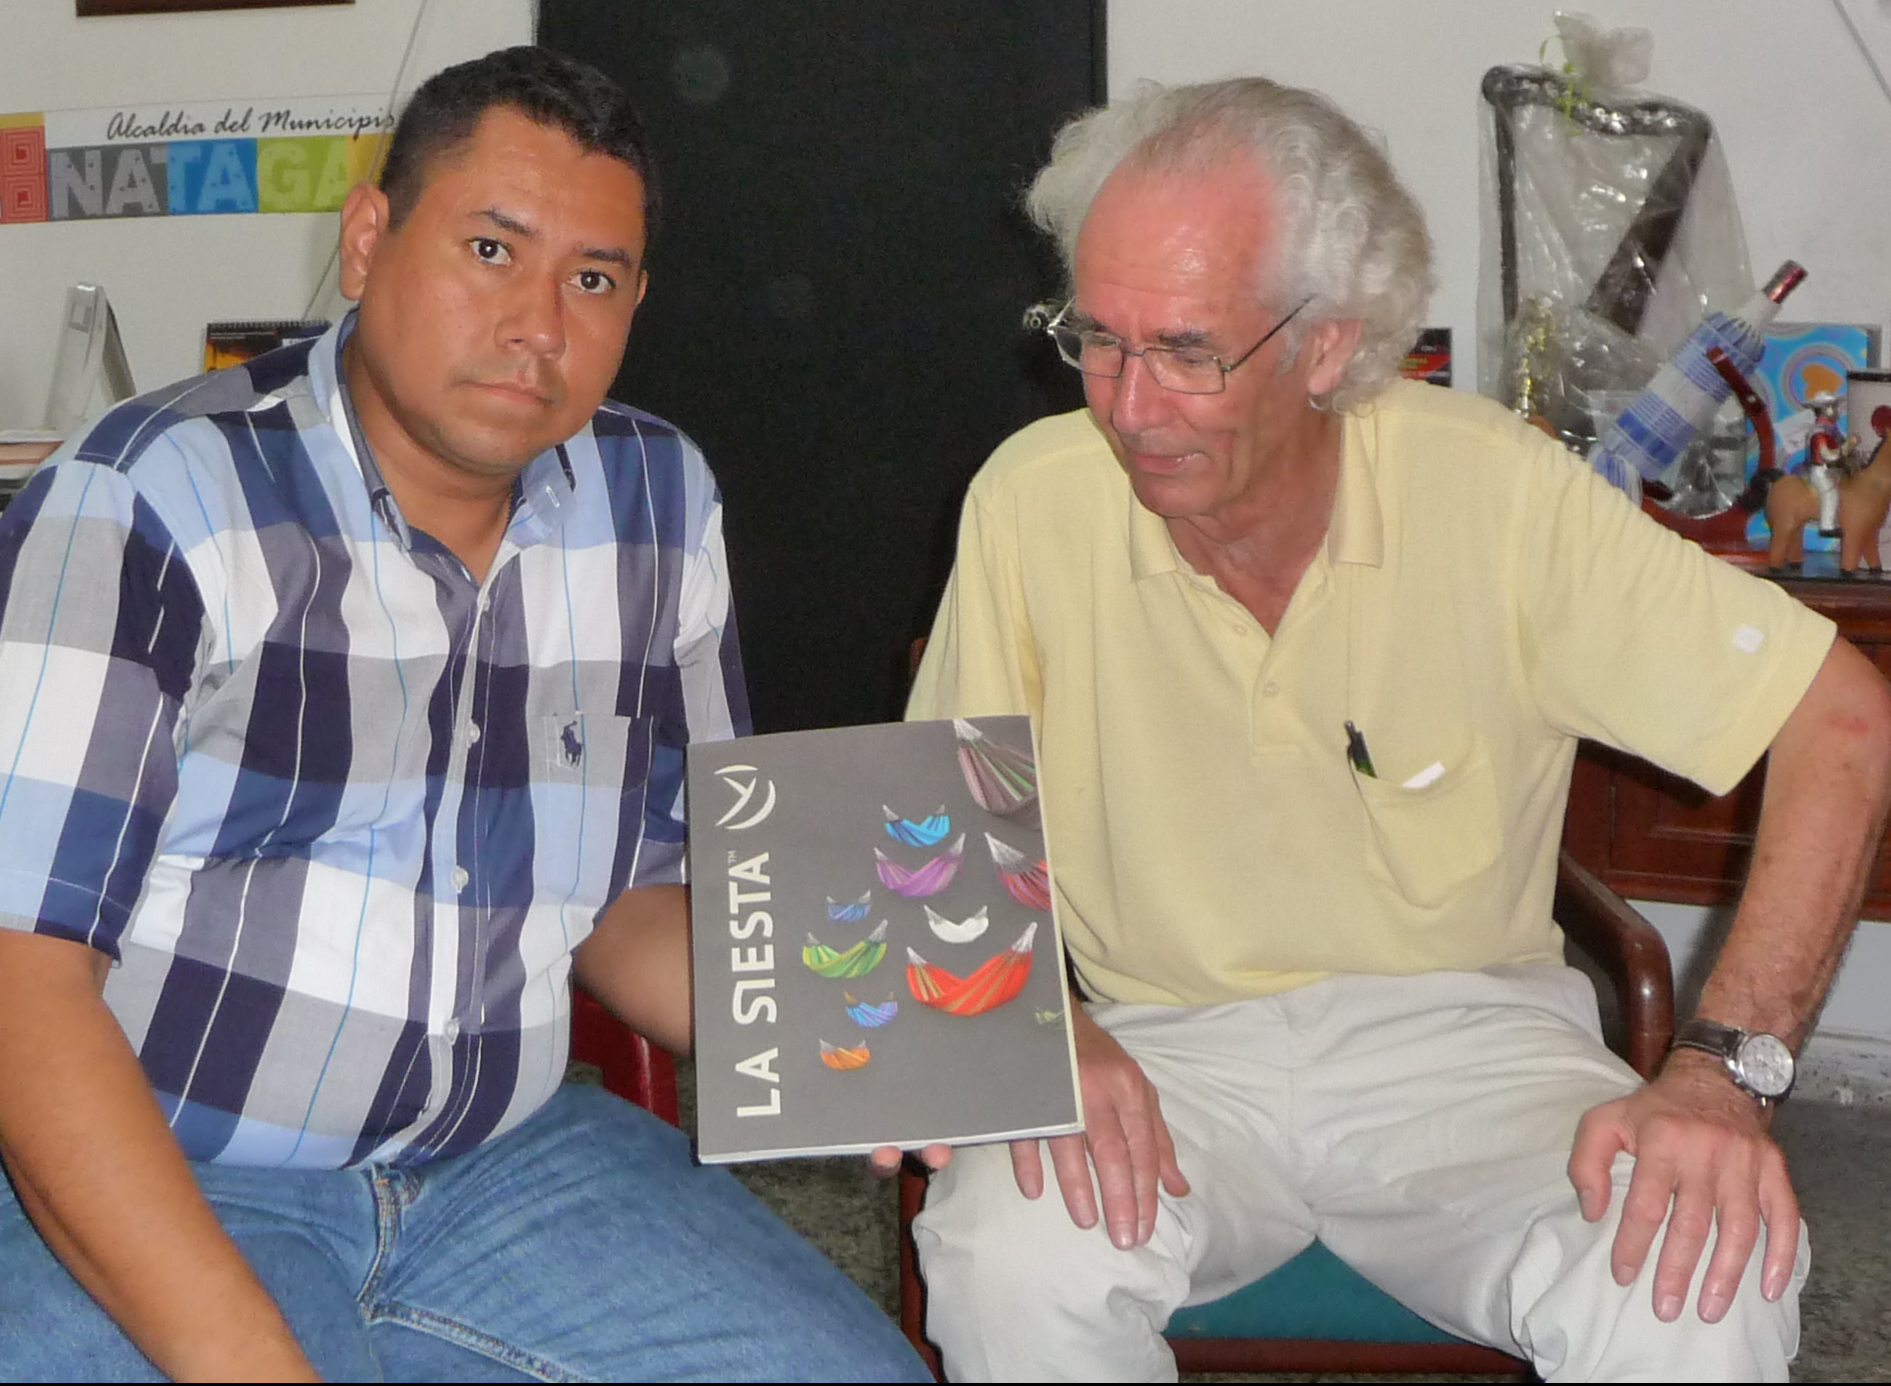 Meeting Major of Natagaima, Colombia 2014